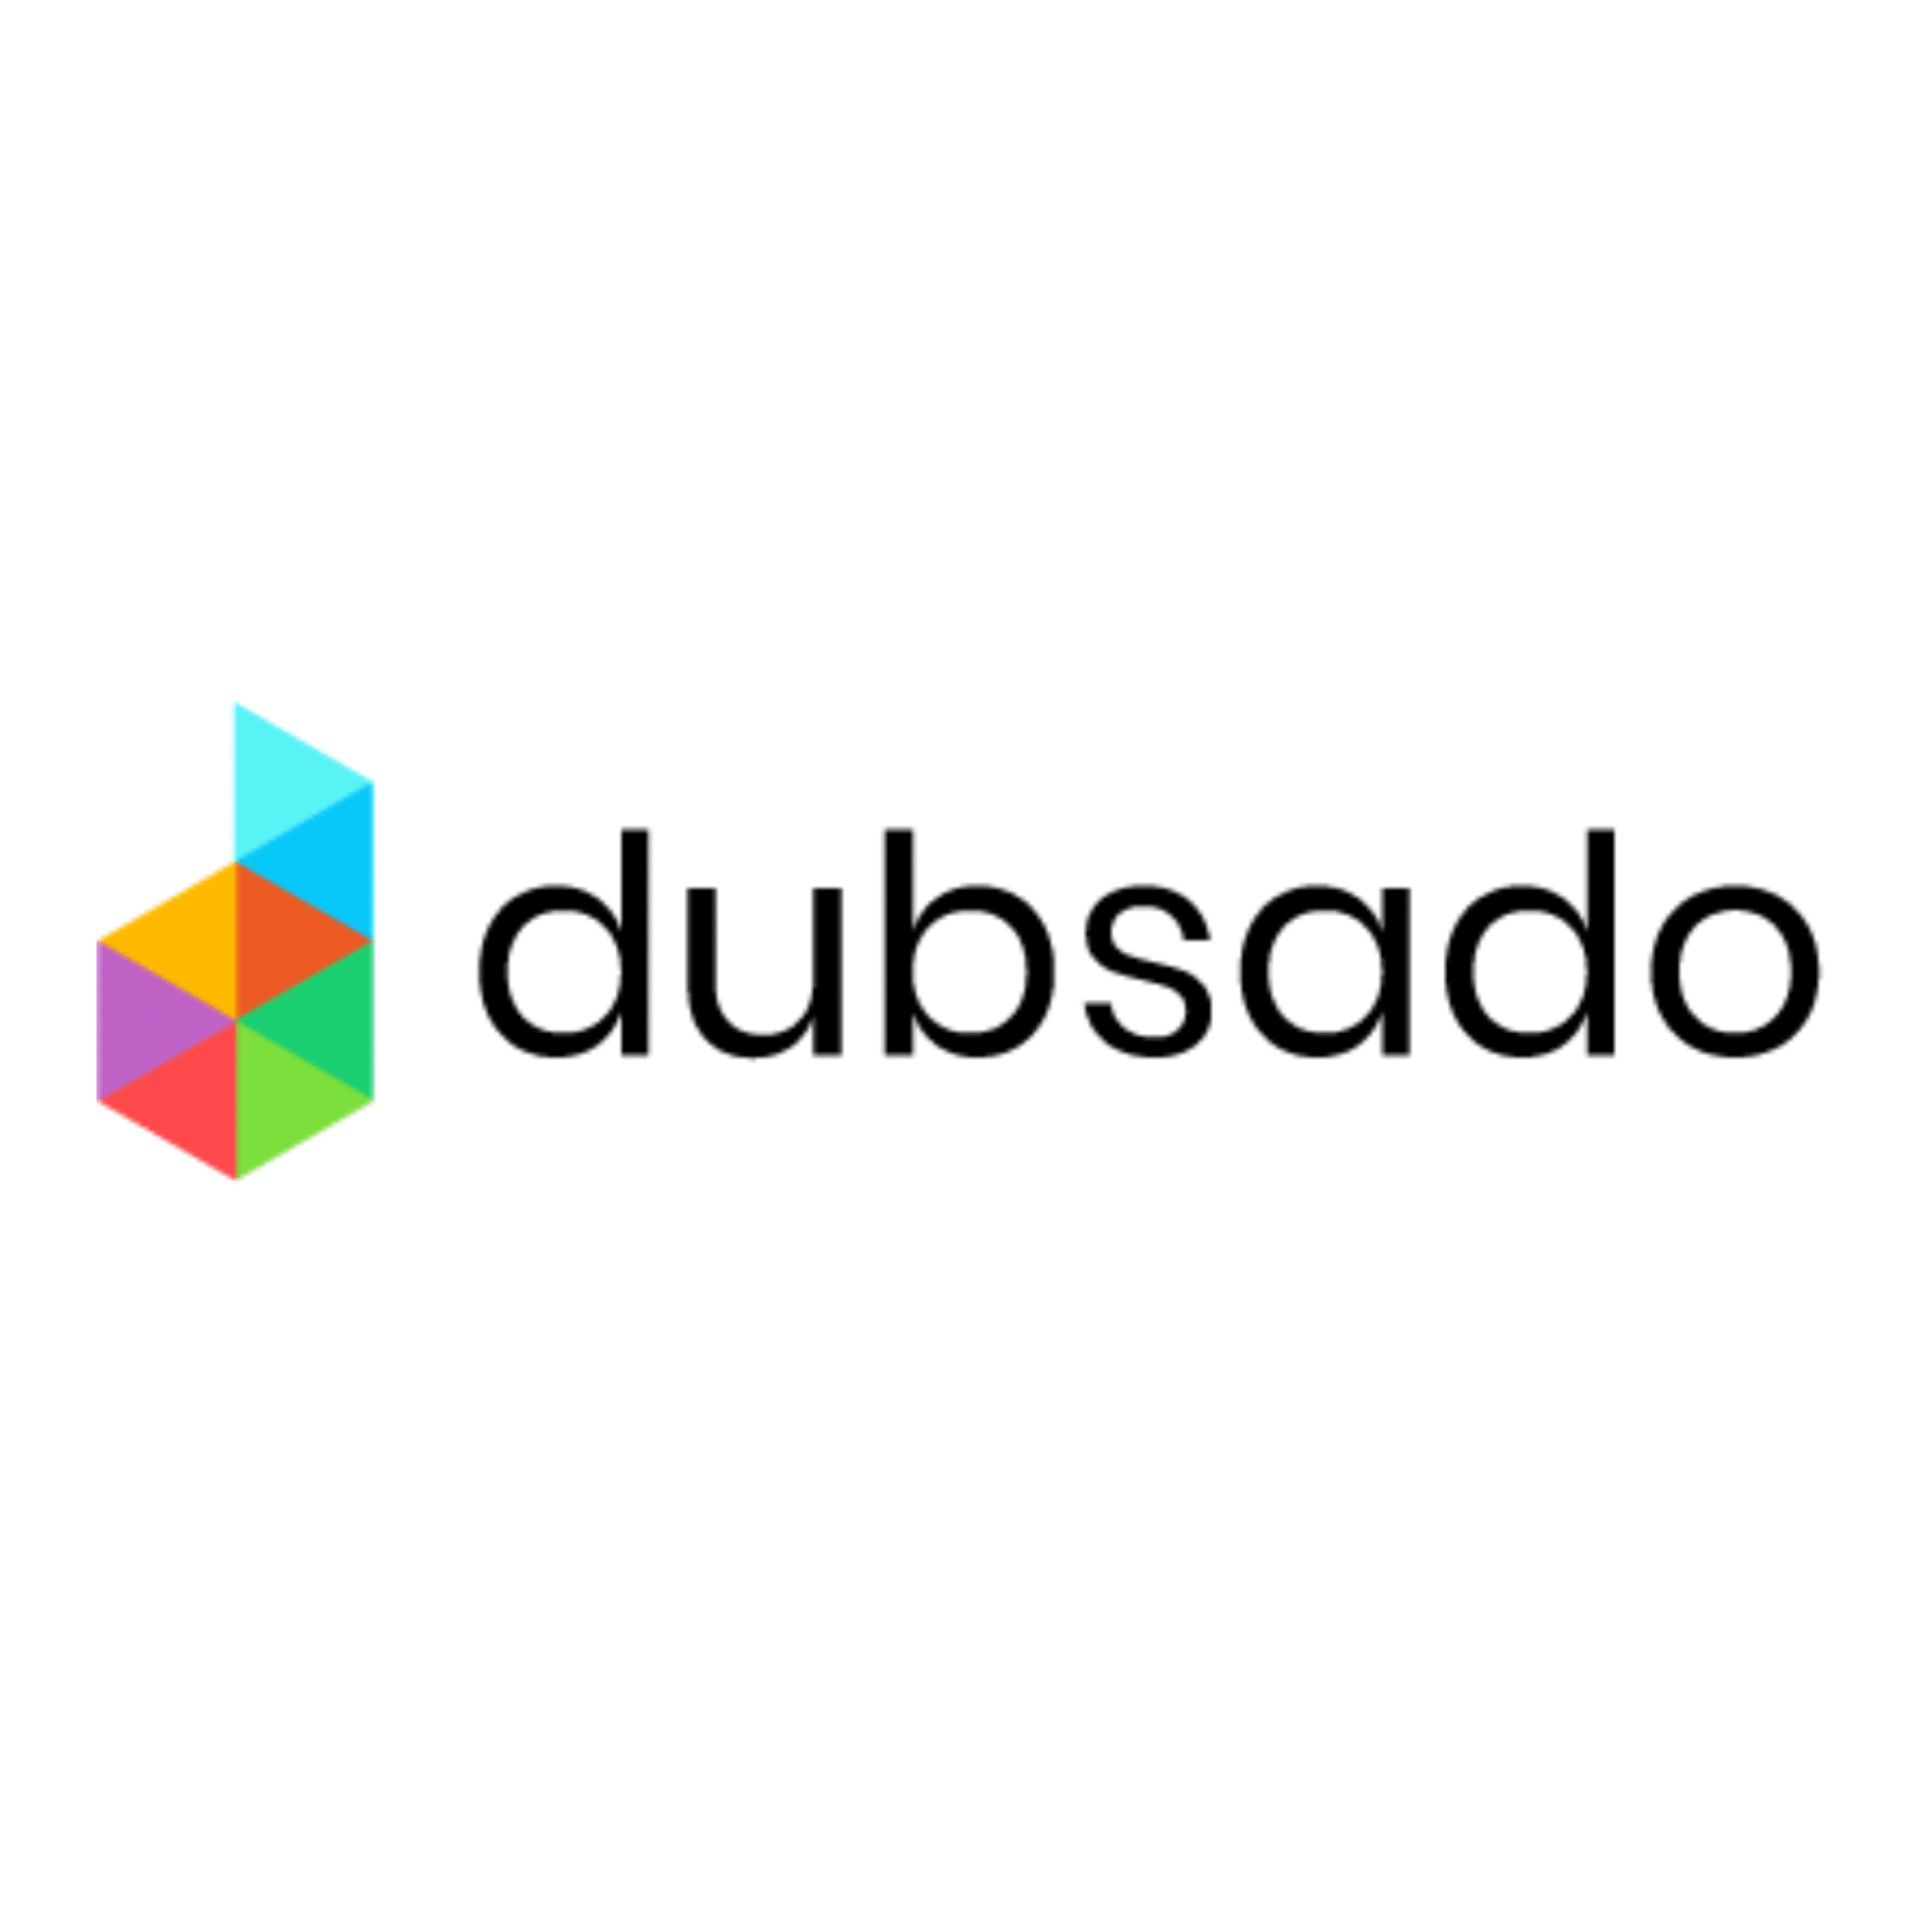 Dubsado 2020 Birth Photography Image Competition Sponsor